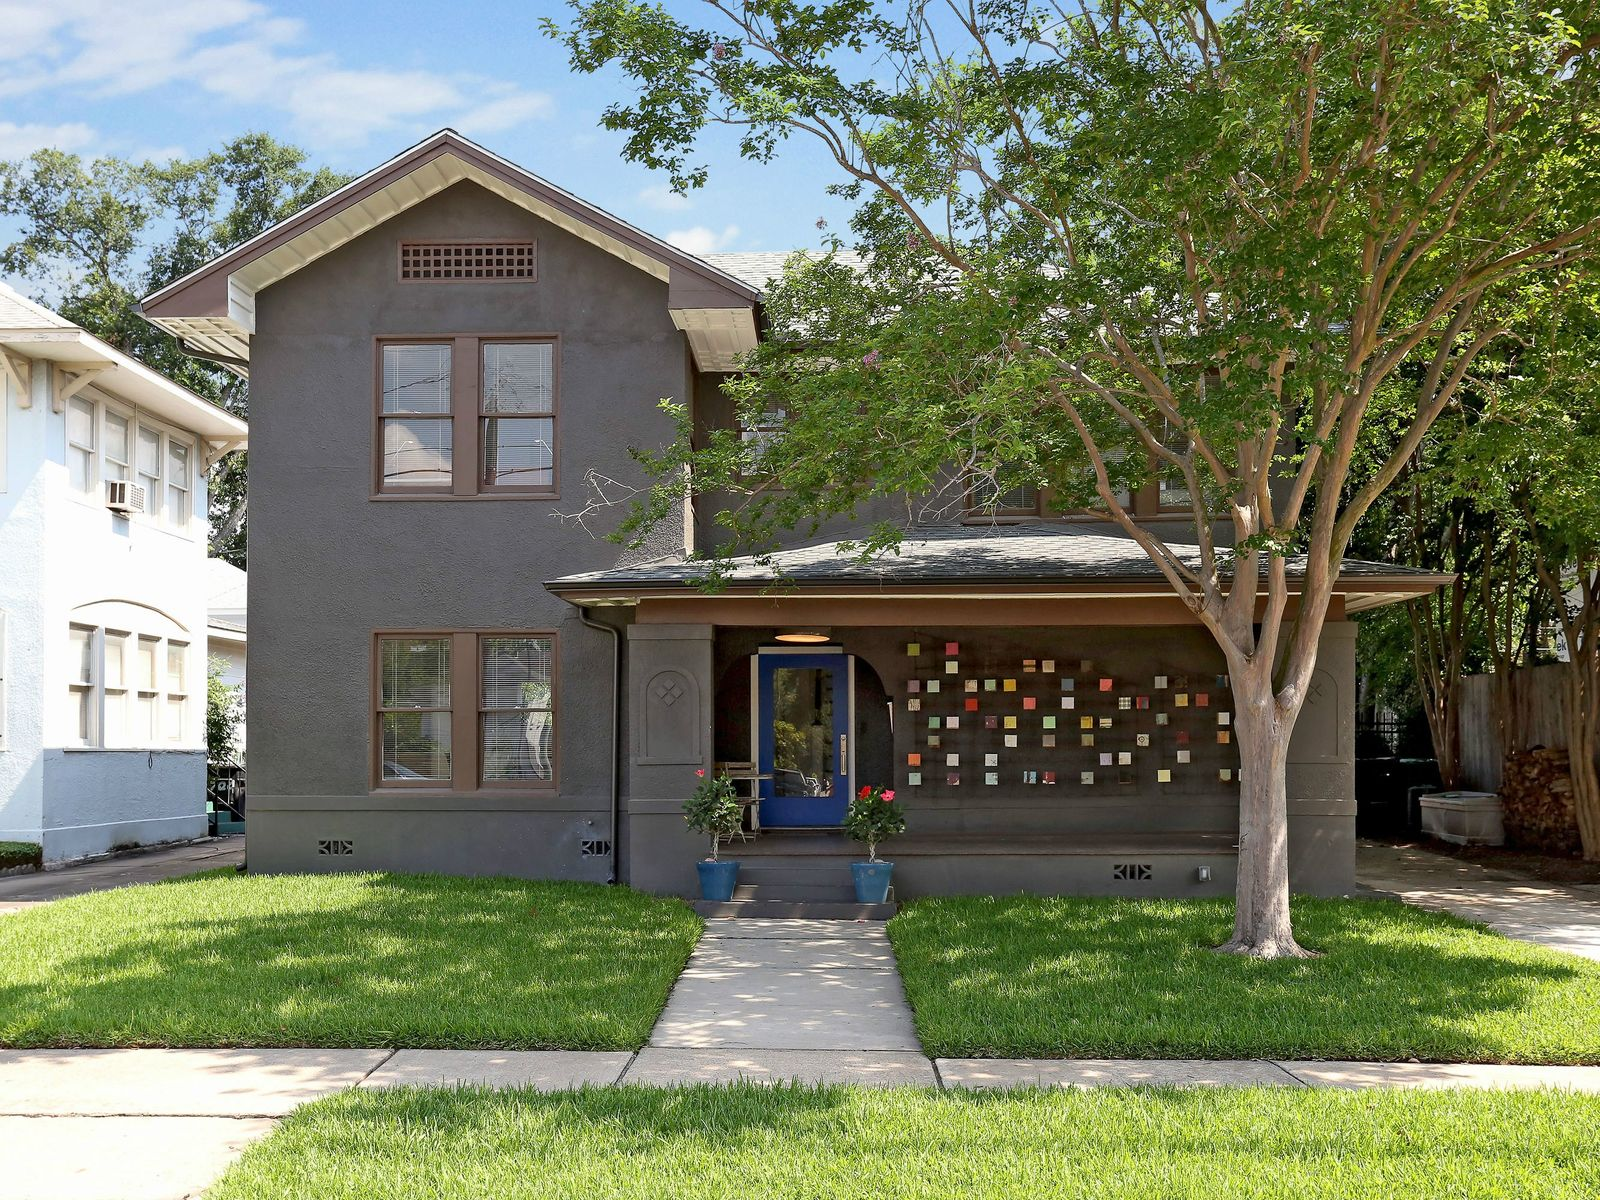 636 W. Alabama, Houston TX Single Family Home - Houston Real Estate